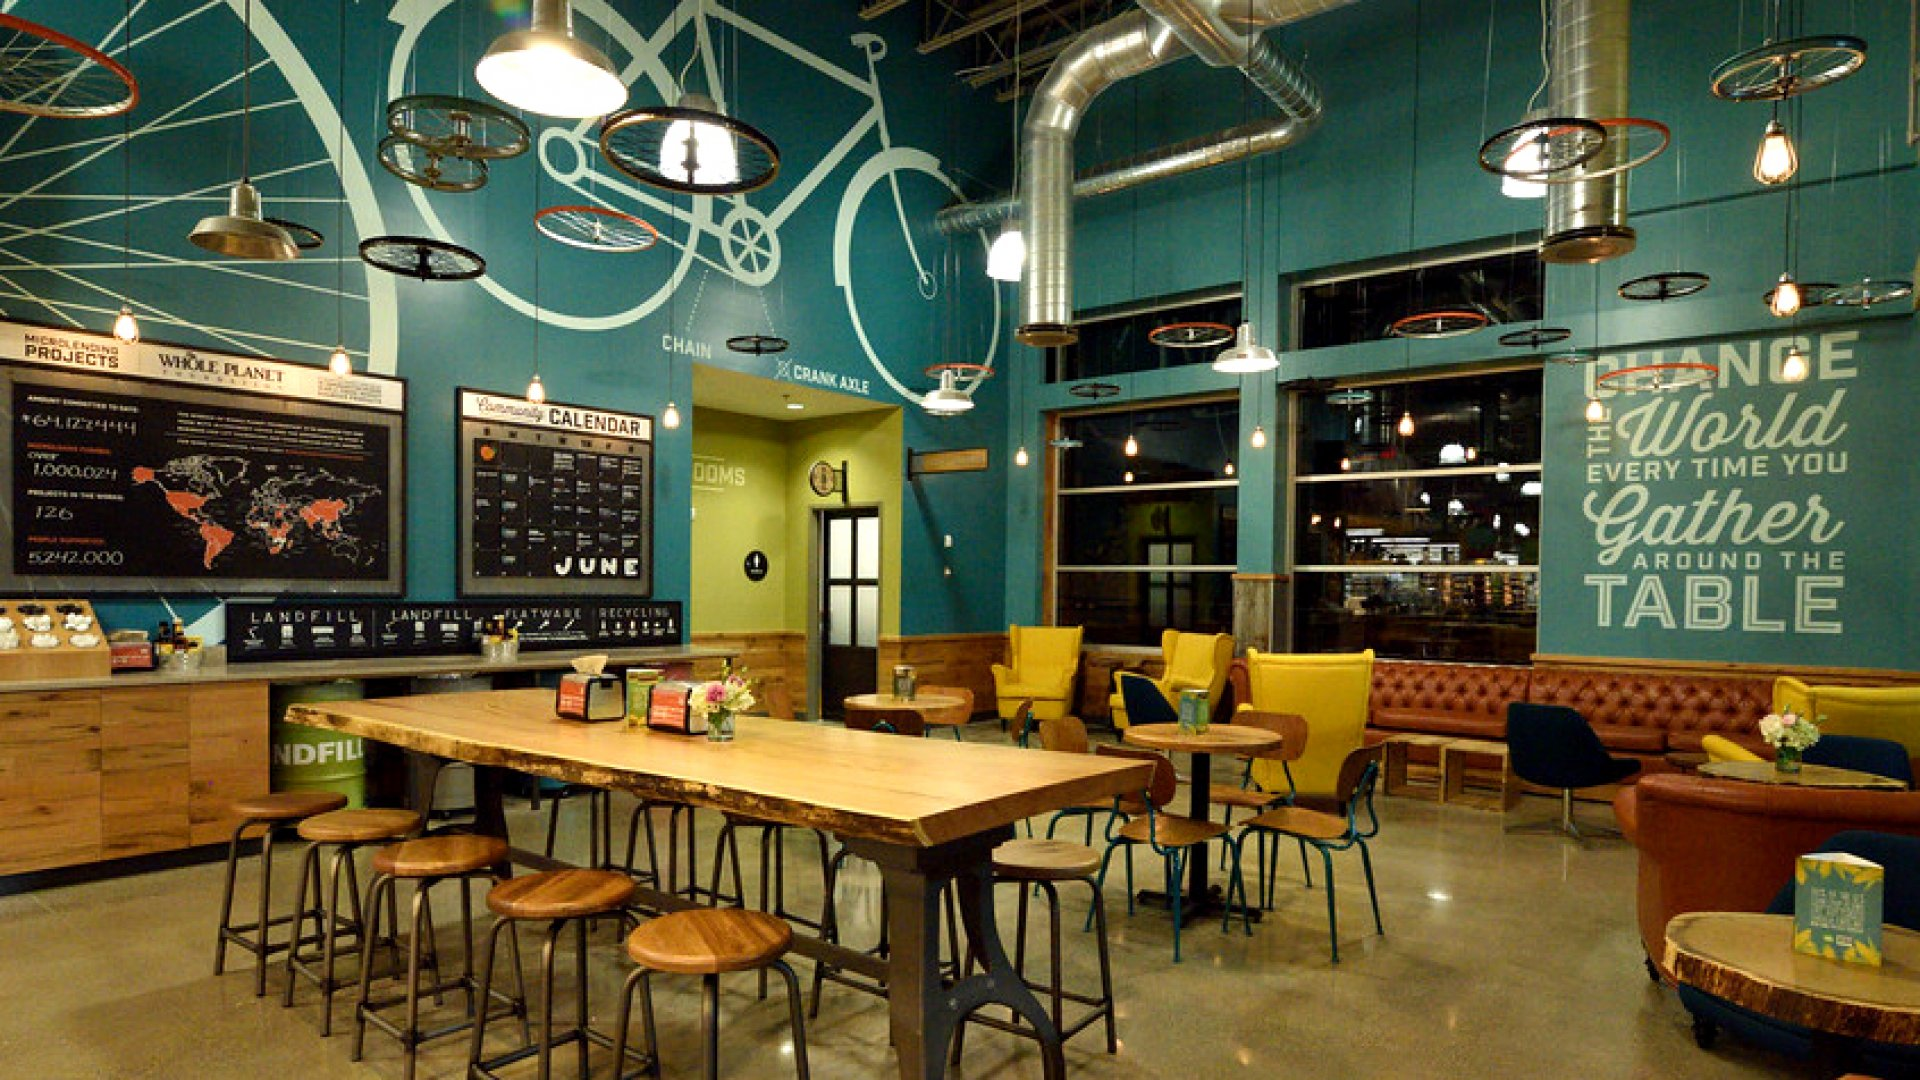 A Whole Foods store in Dayton, Ohio is designed to evoke the Wright Brothers, who invented the airplane.